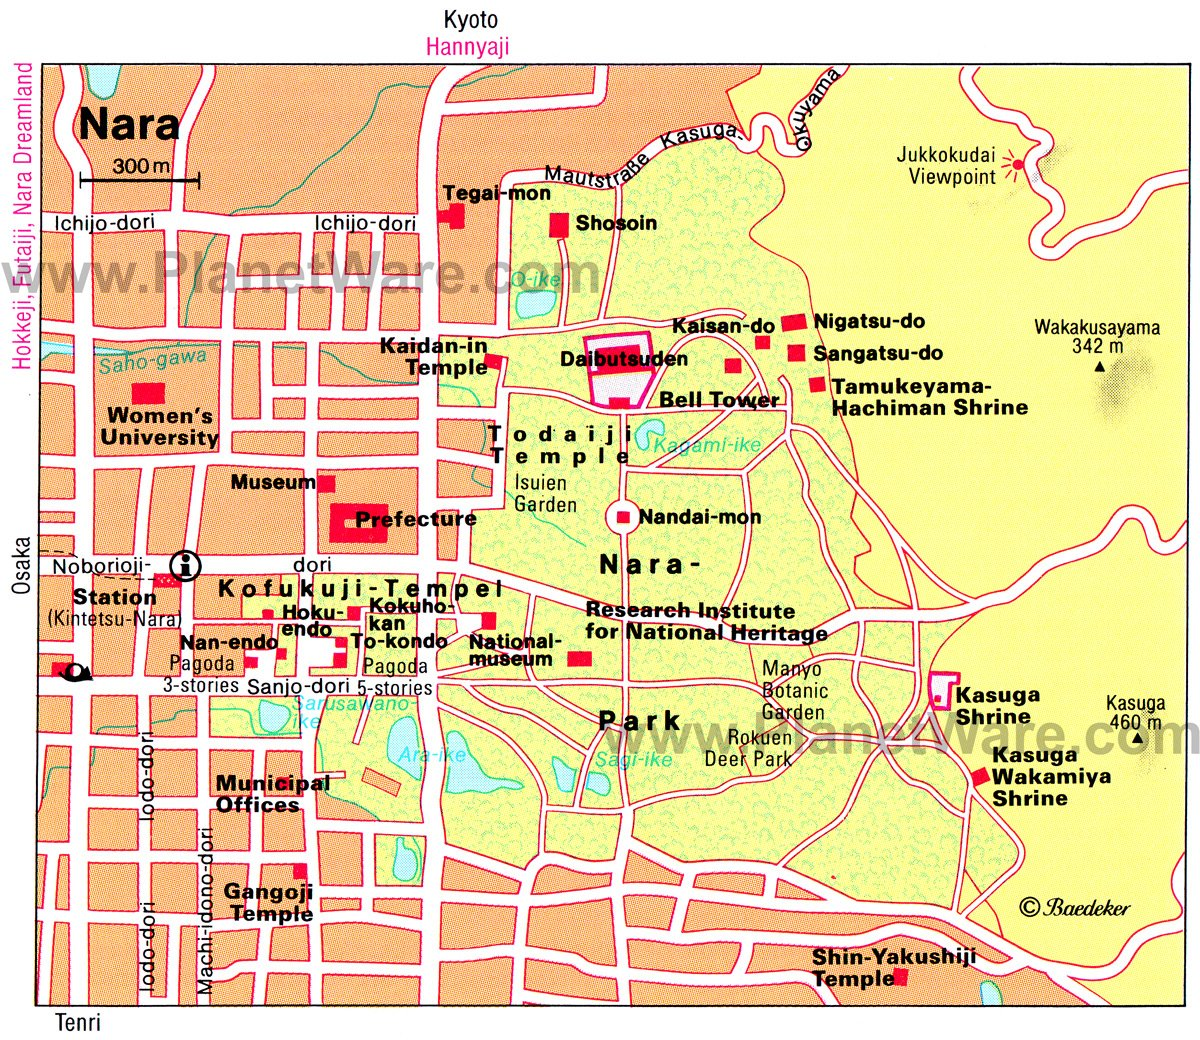 10 TopRated Tourist Attractions in Nara – Kyoto Tourist Attractions Map